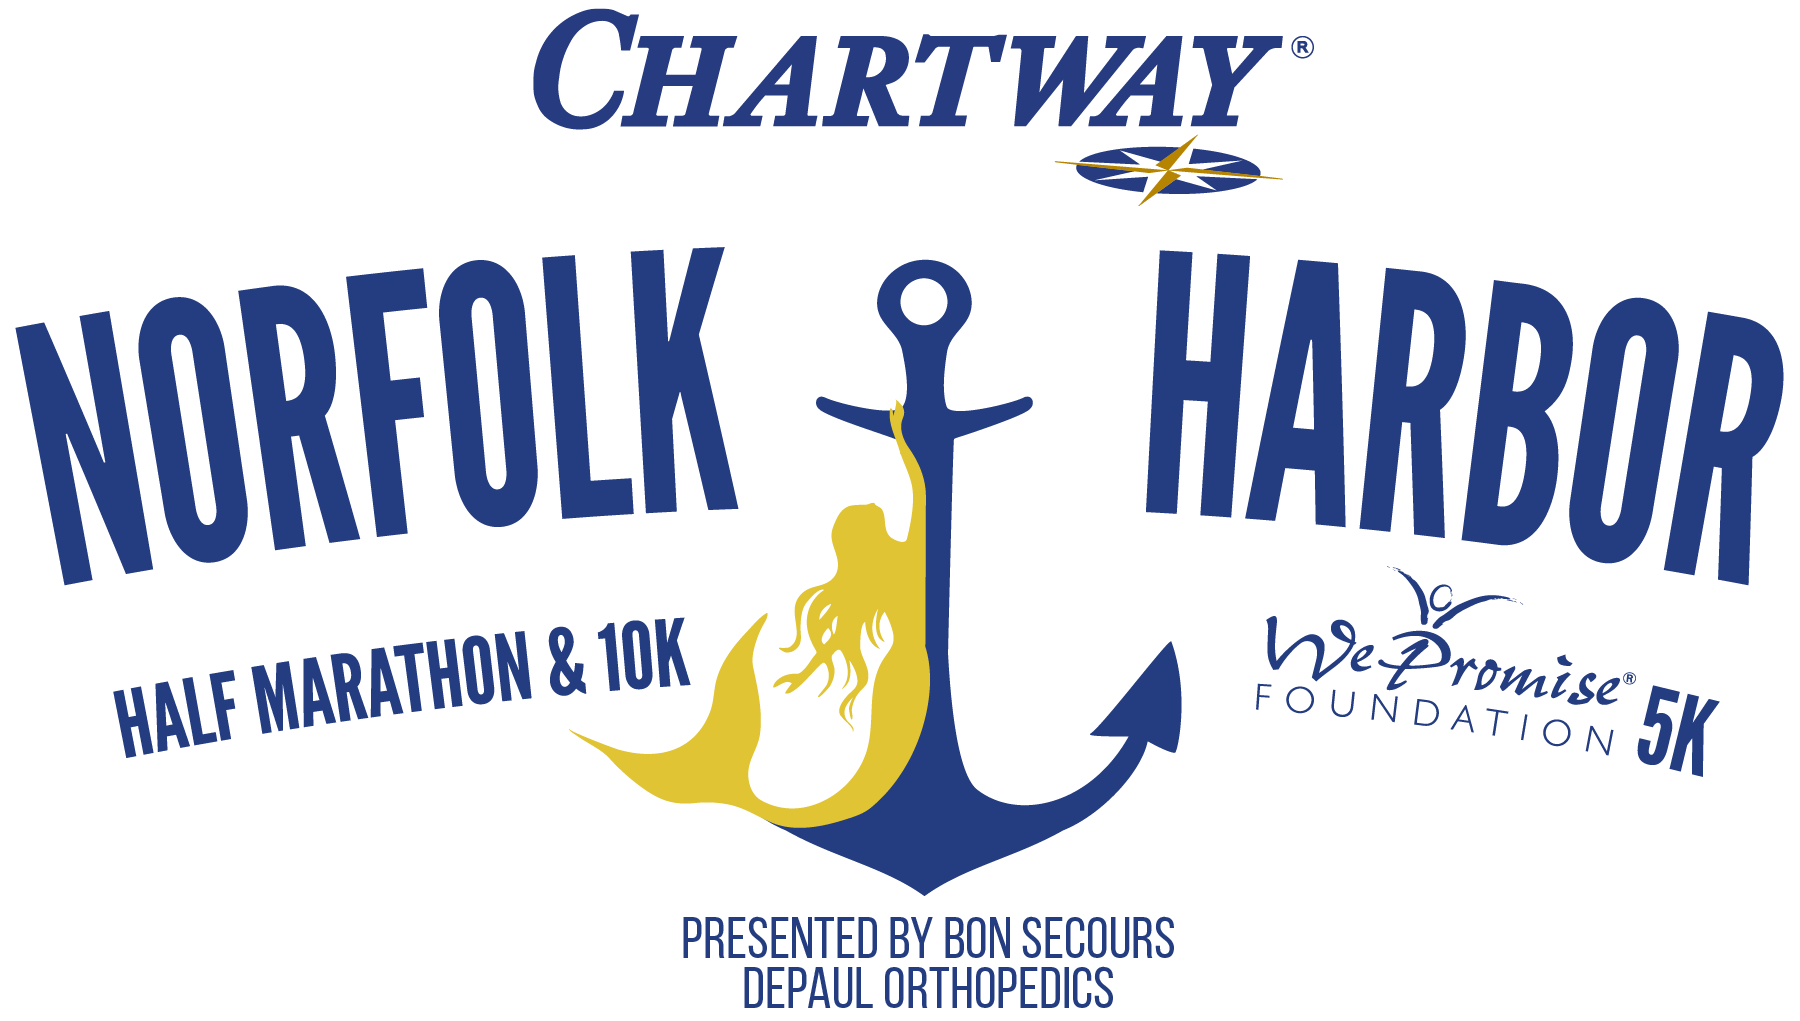 Norfolk Harbor Half Marathon